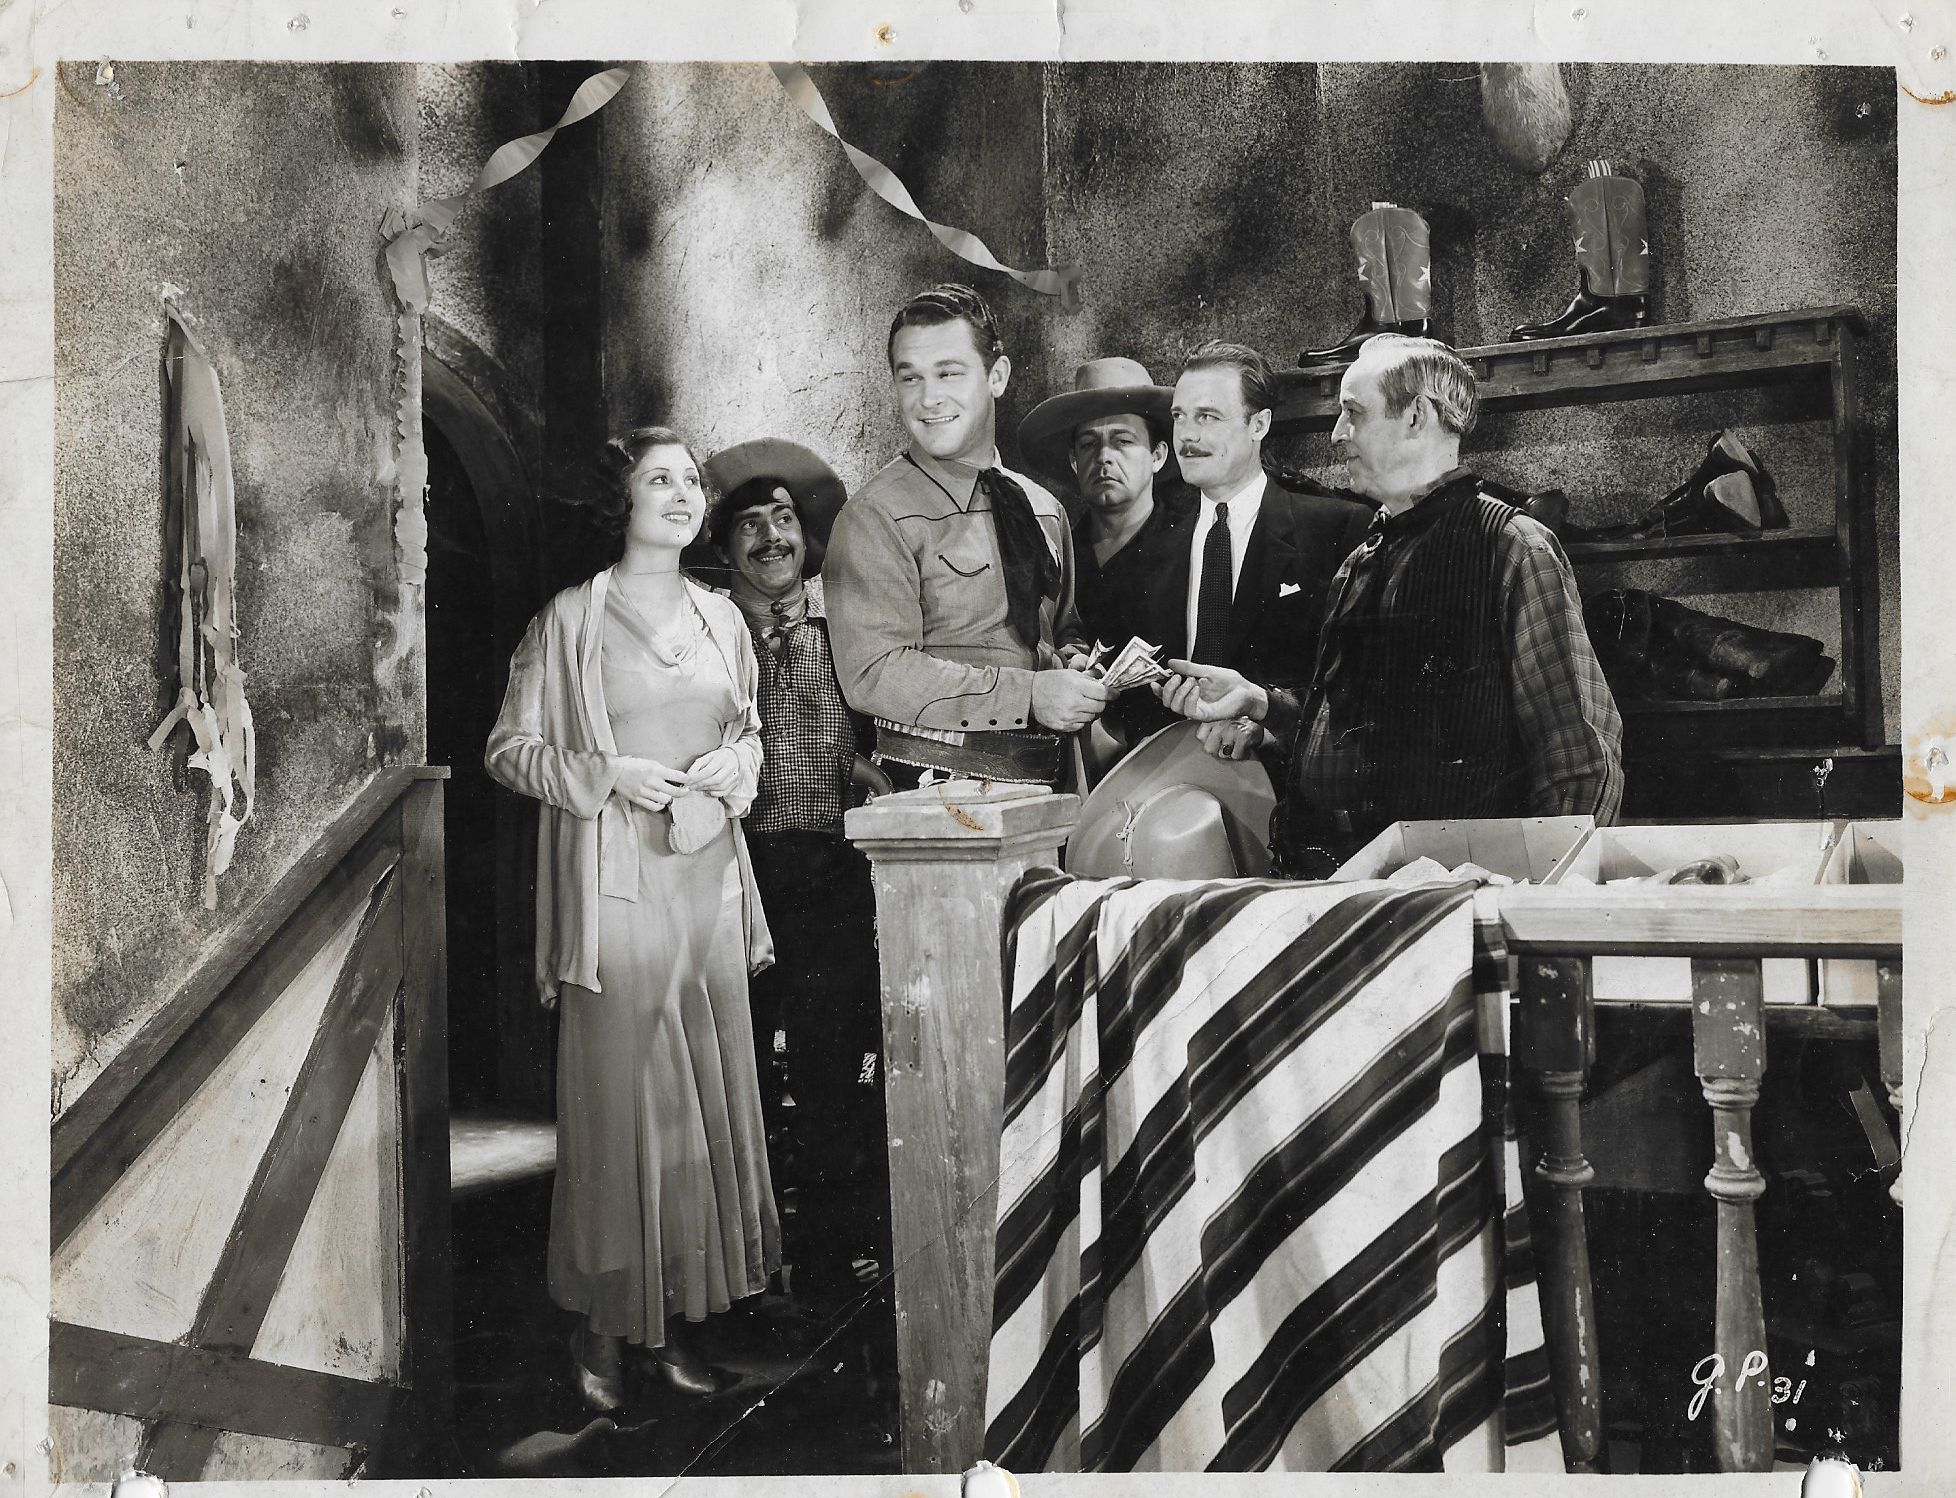 George Morrell, Marion Shilling, Hal Taliaferro, Guinn 'Big Boy' Williams, Roger Williams, and Frank Yaconelli in Gun Play (1935)